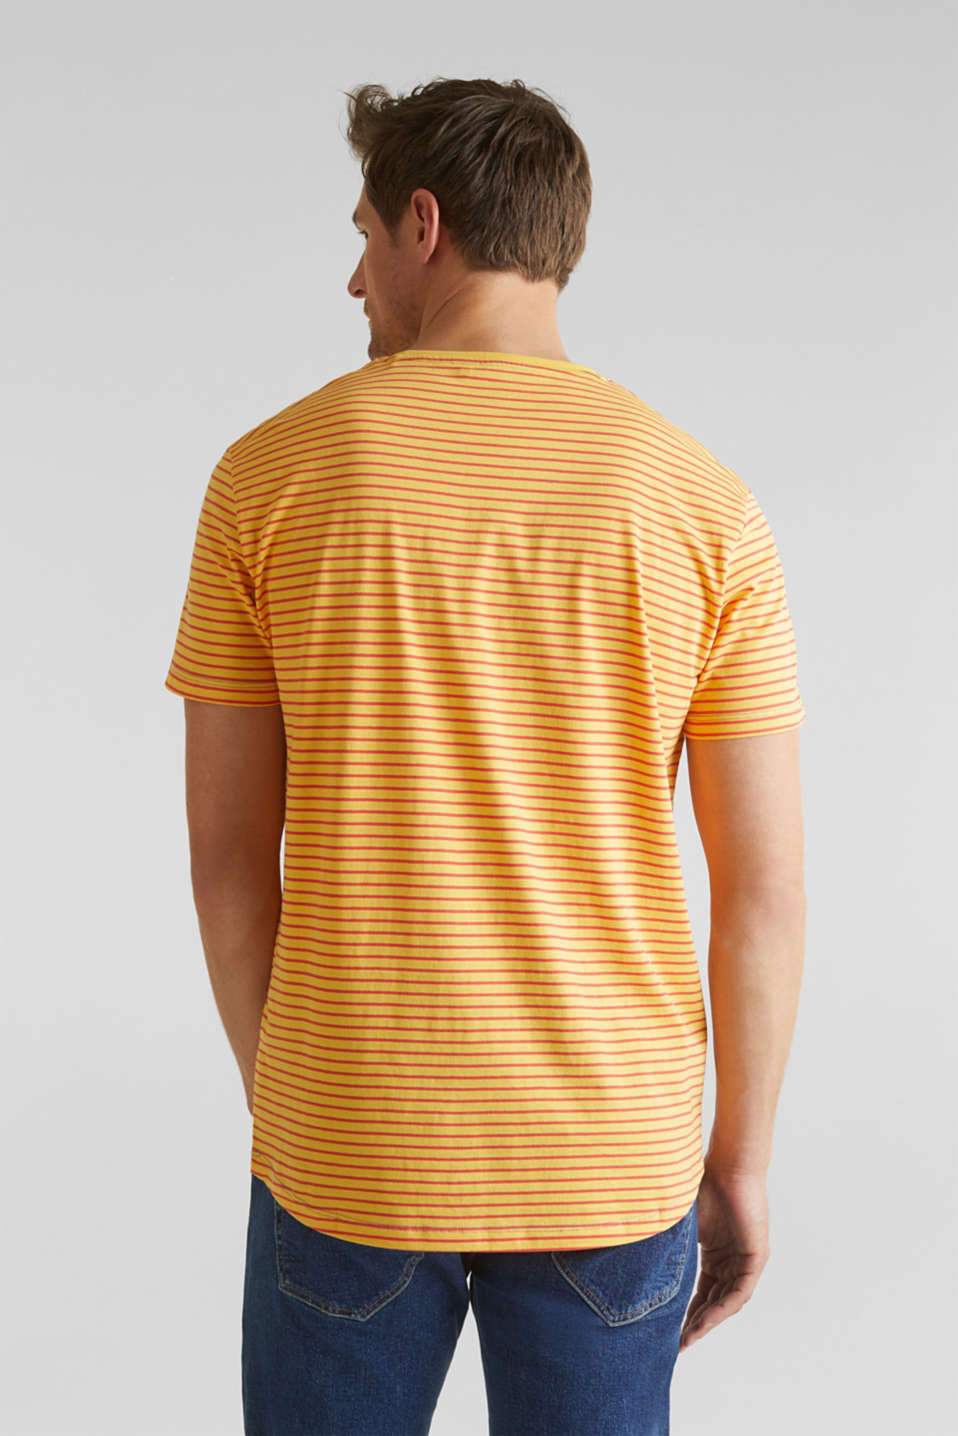 Jersey T-shirt with stripes, 100% cotton, BRASS YELLOW 3, detail image number 3